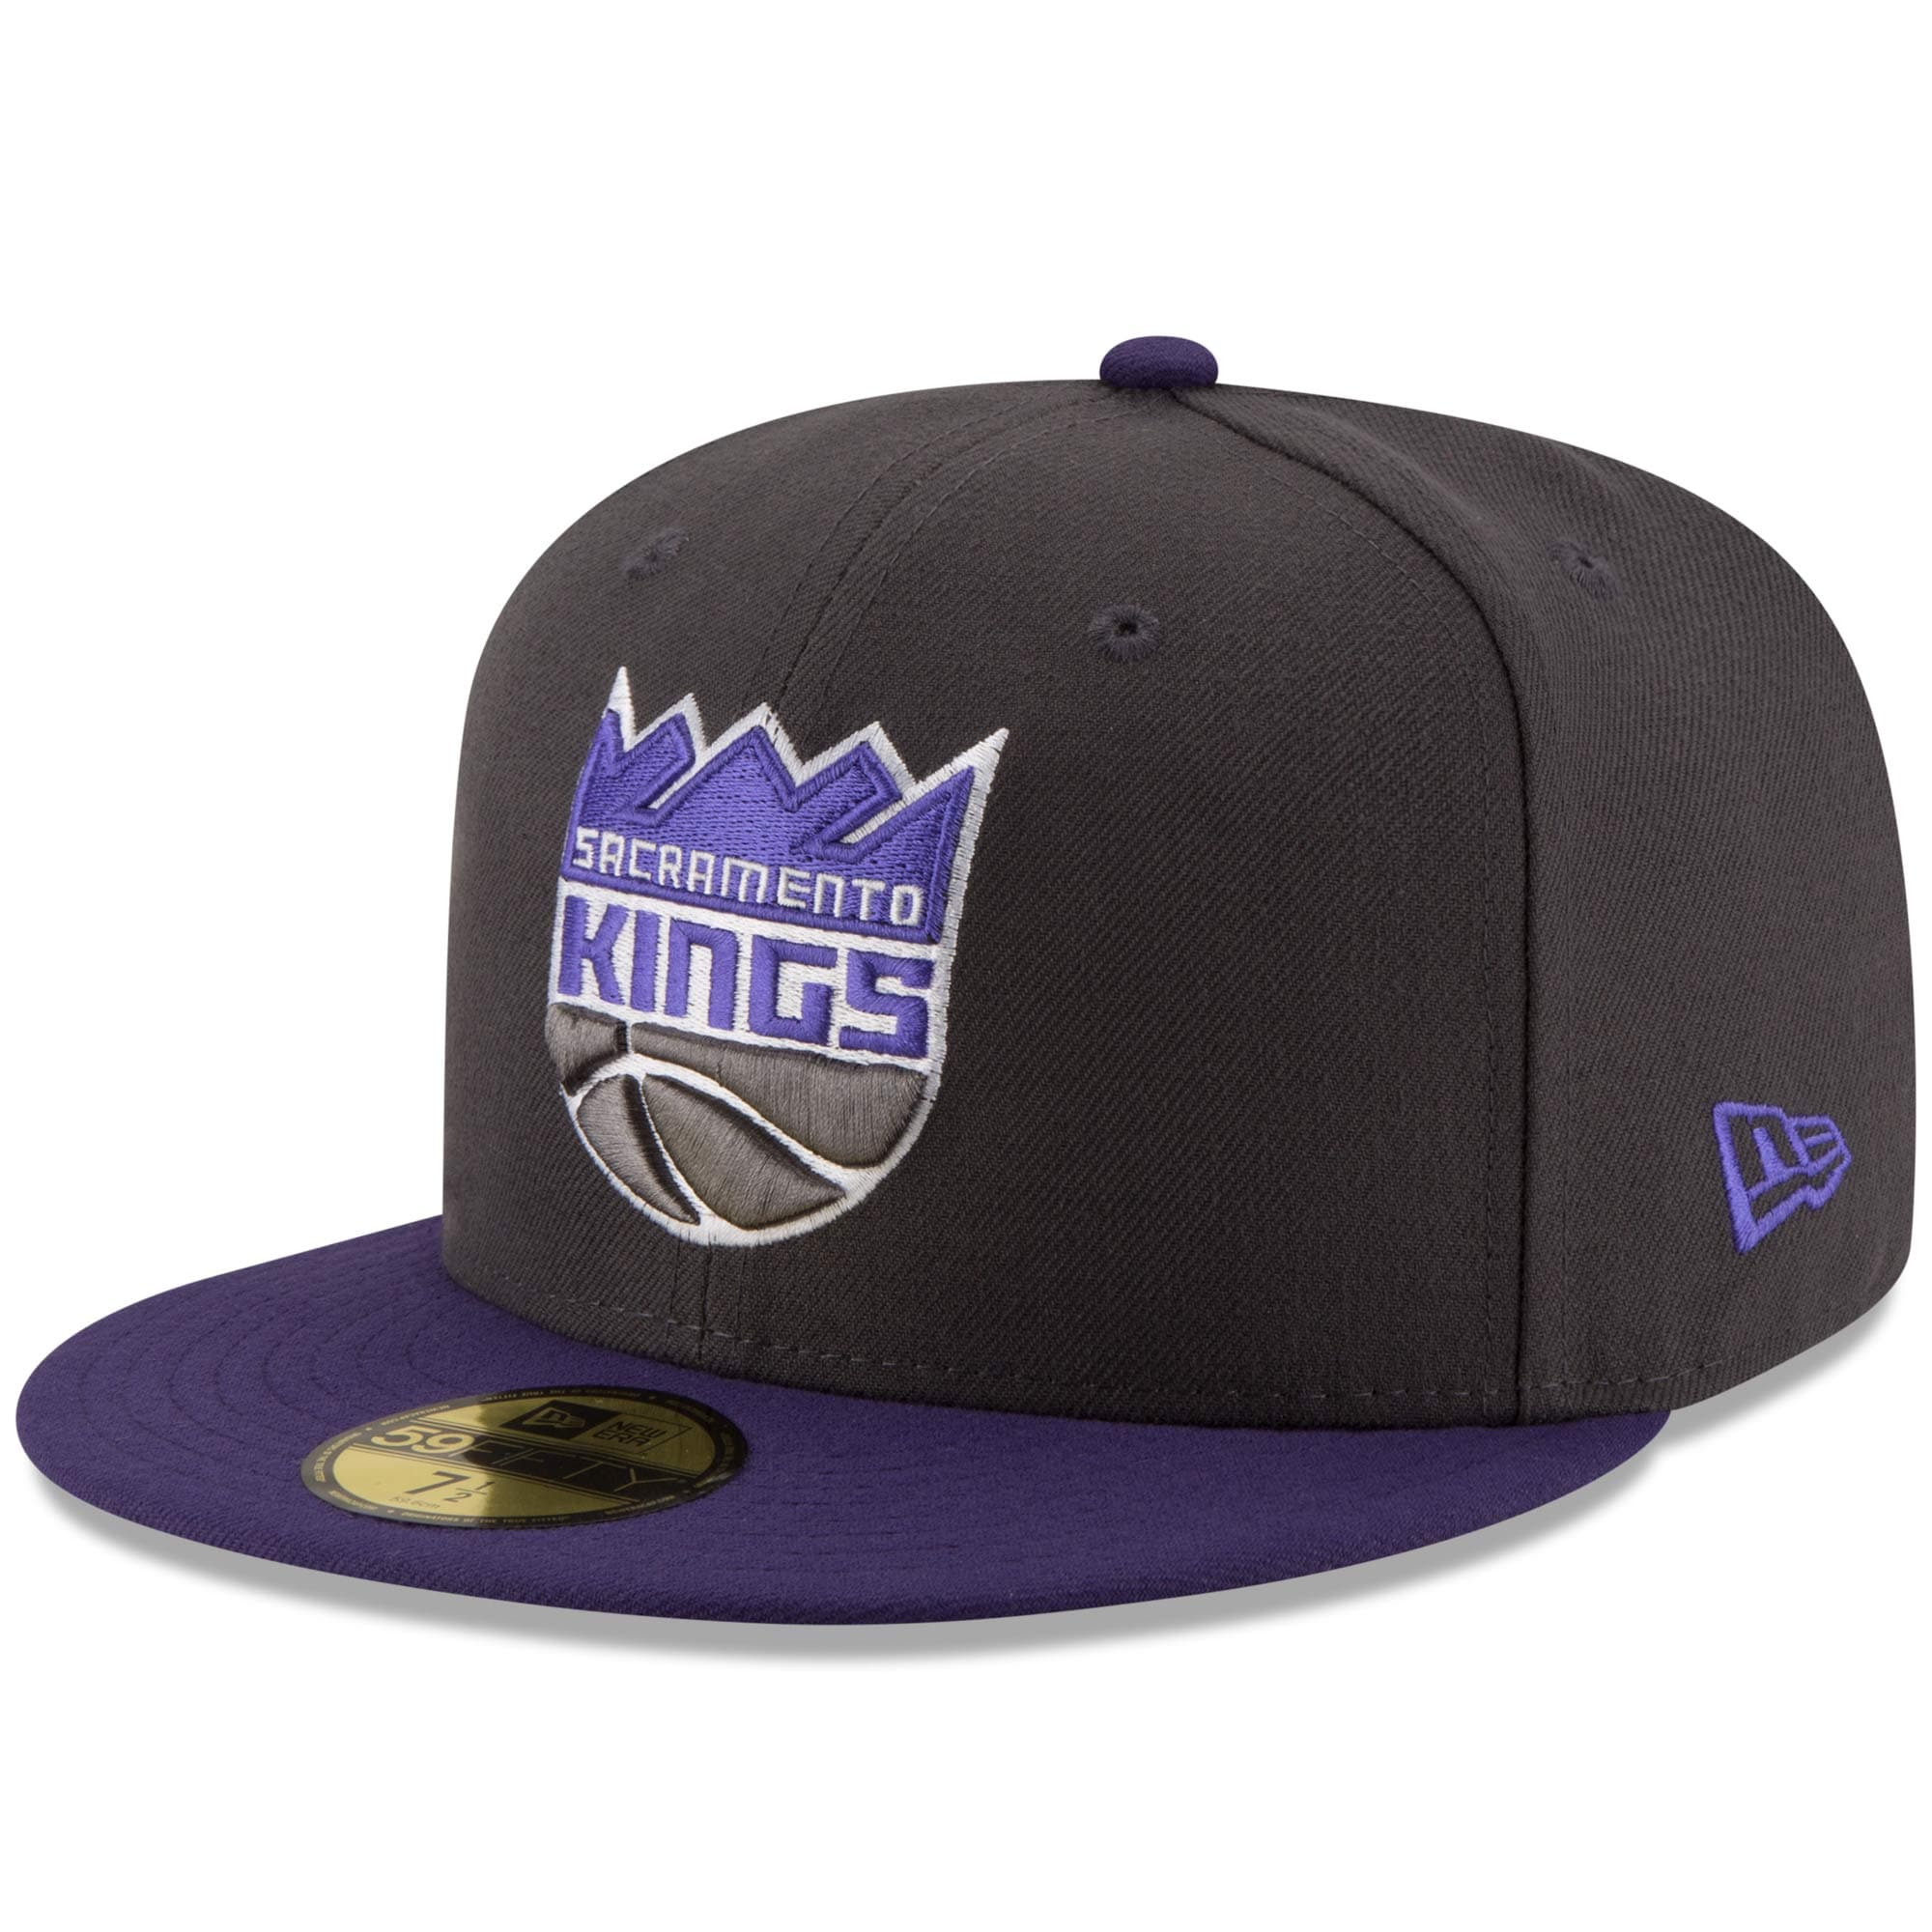 Sacramento Kings New Era Official Team Color 2Tone 59FIFTY Fitted Hat - Gray/Purple